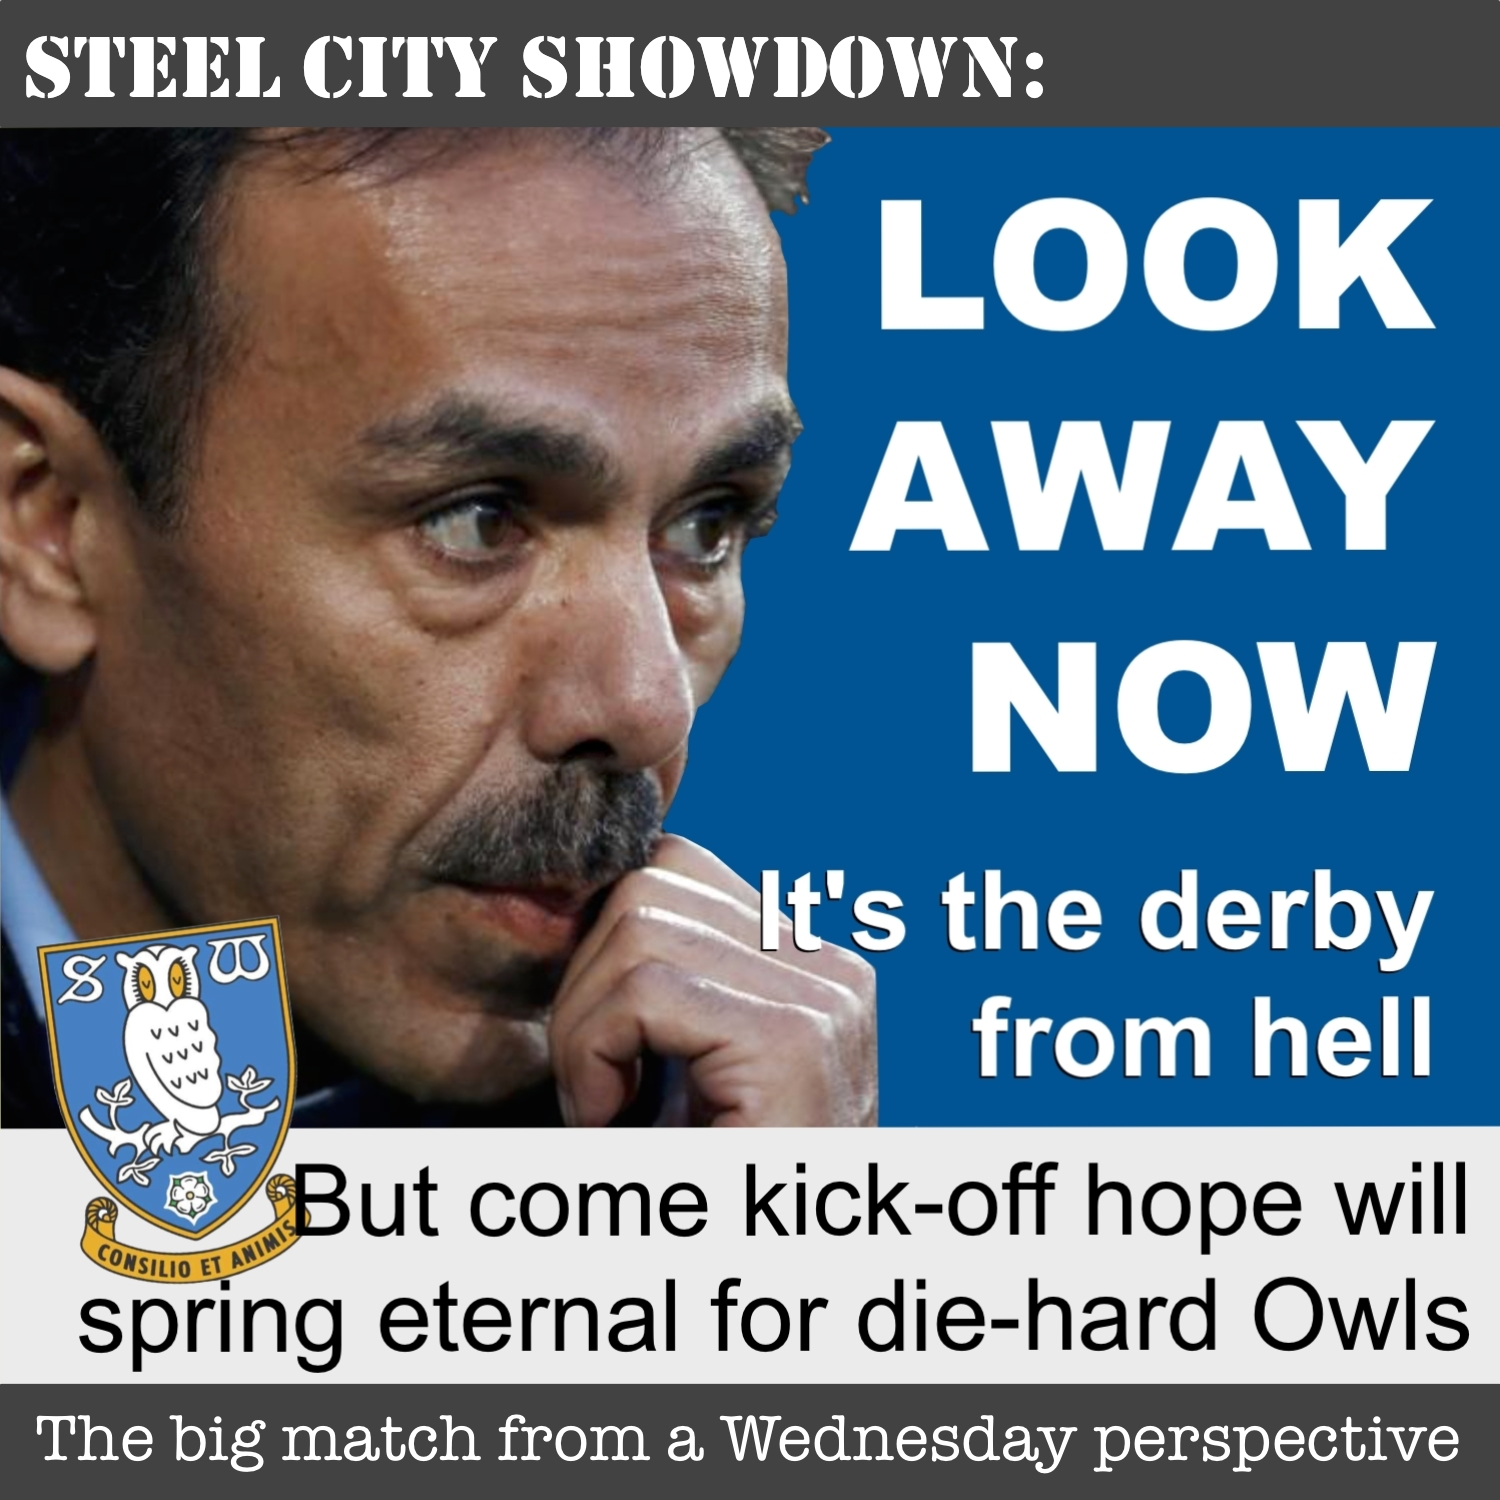 First Steel City showdown of the season and it's the derby from hell for beleagured Sheffield Wednesday fans heading to Bramall Lane as high-flying Blades await